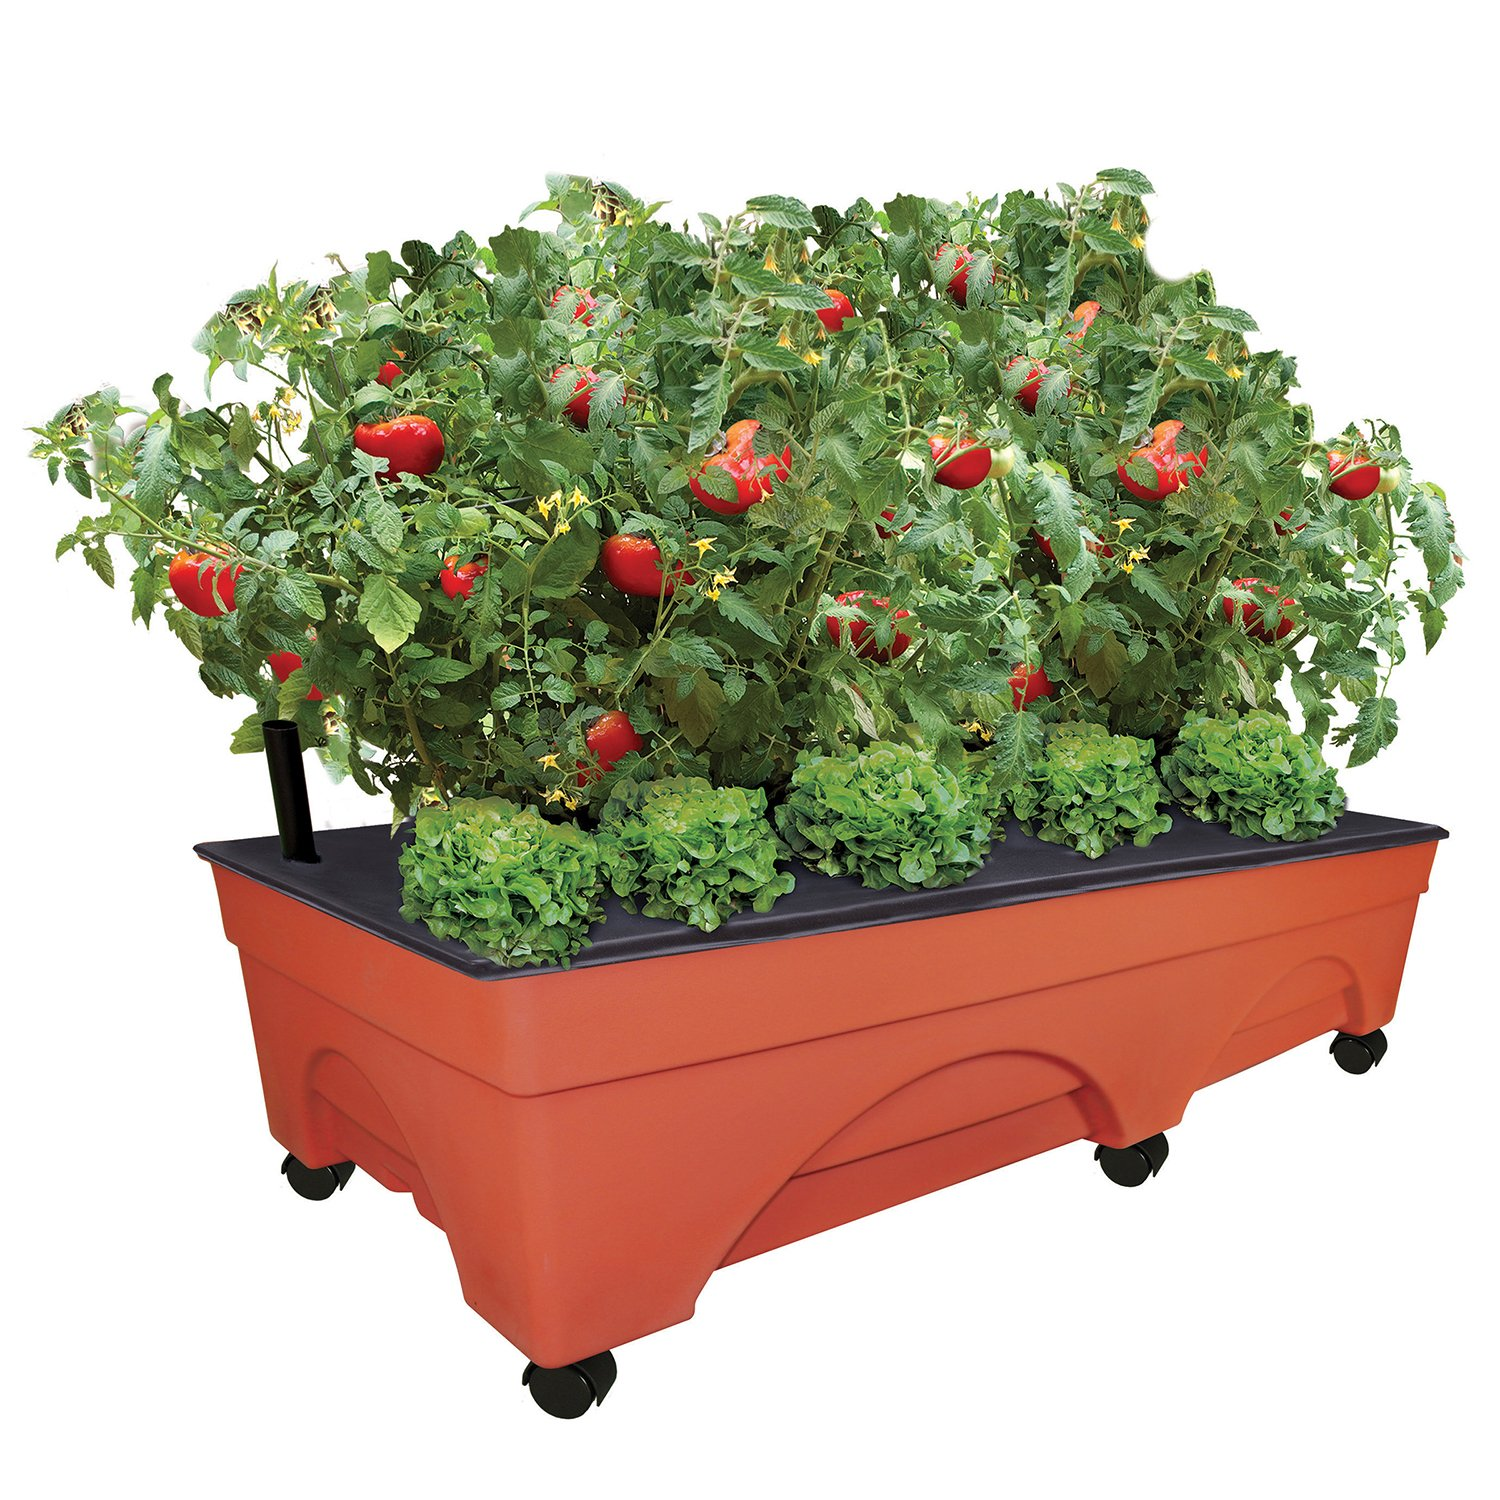 "EMSCO Group Big City Picker Raised Bed Grow Box – Self Watering and Improved Aeration – Mobile Unit with Casters – Extra Large 48"" x 20"" Design by Emsco Group"